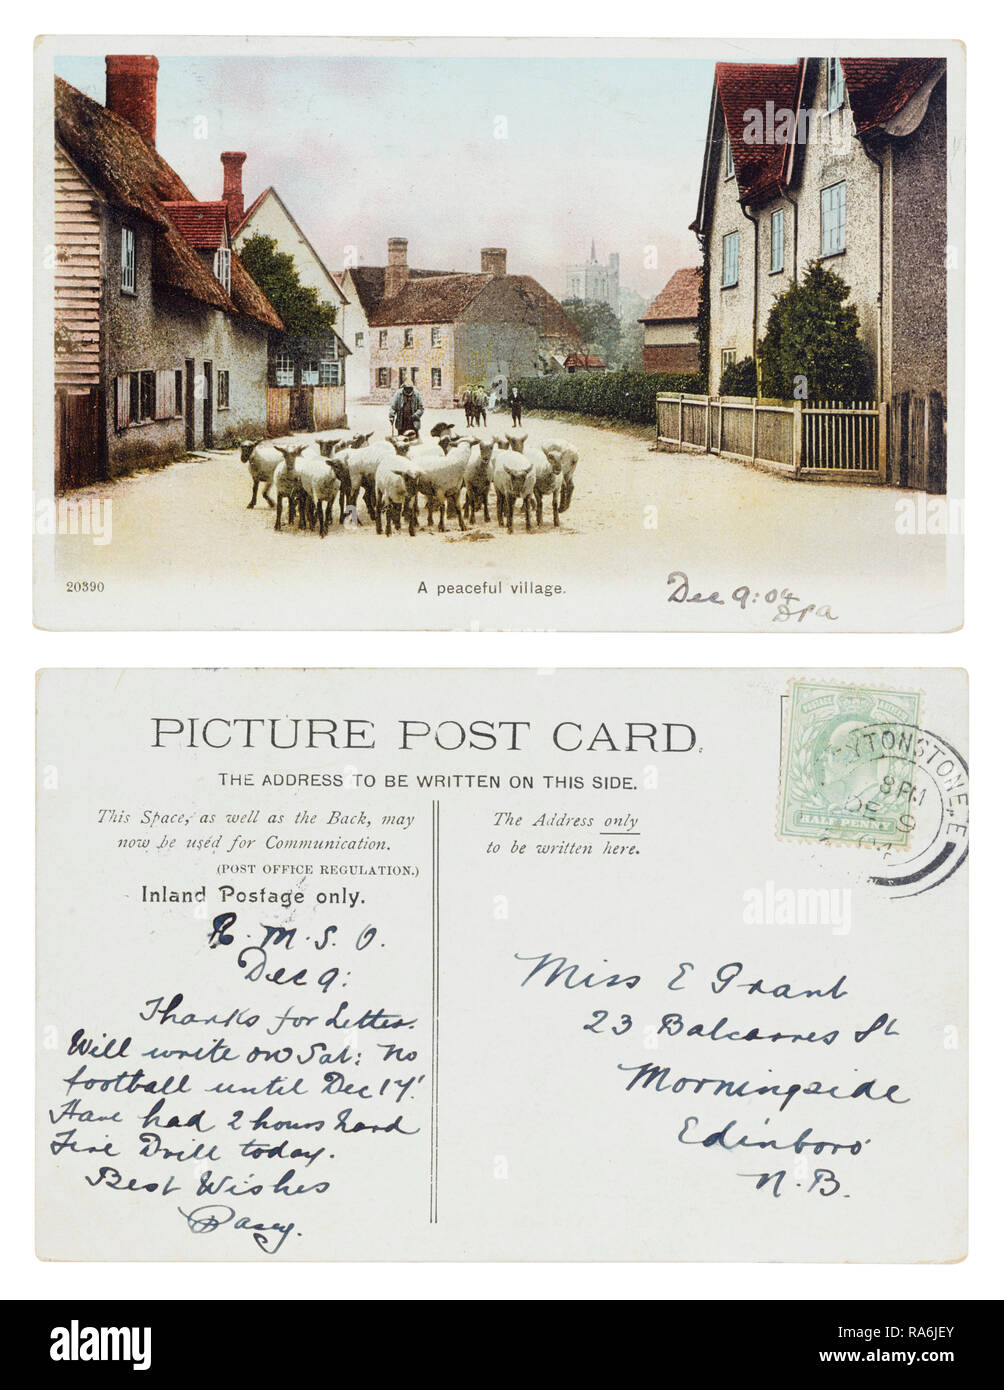 Postcard of a peaceful village from Leytonstone in 1904 to Miss E Grant, 23 Balcarres Street, Morningside, Edinborough - Stock Image